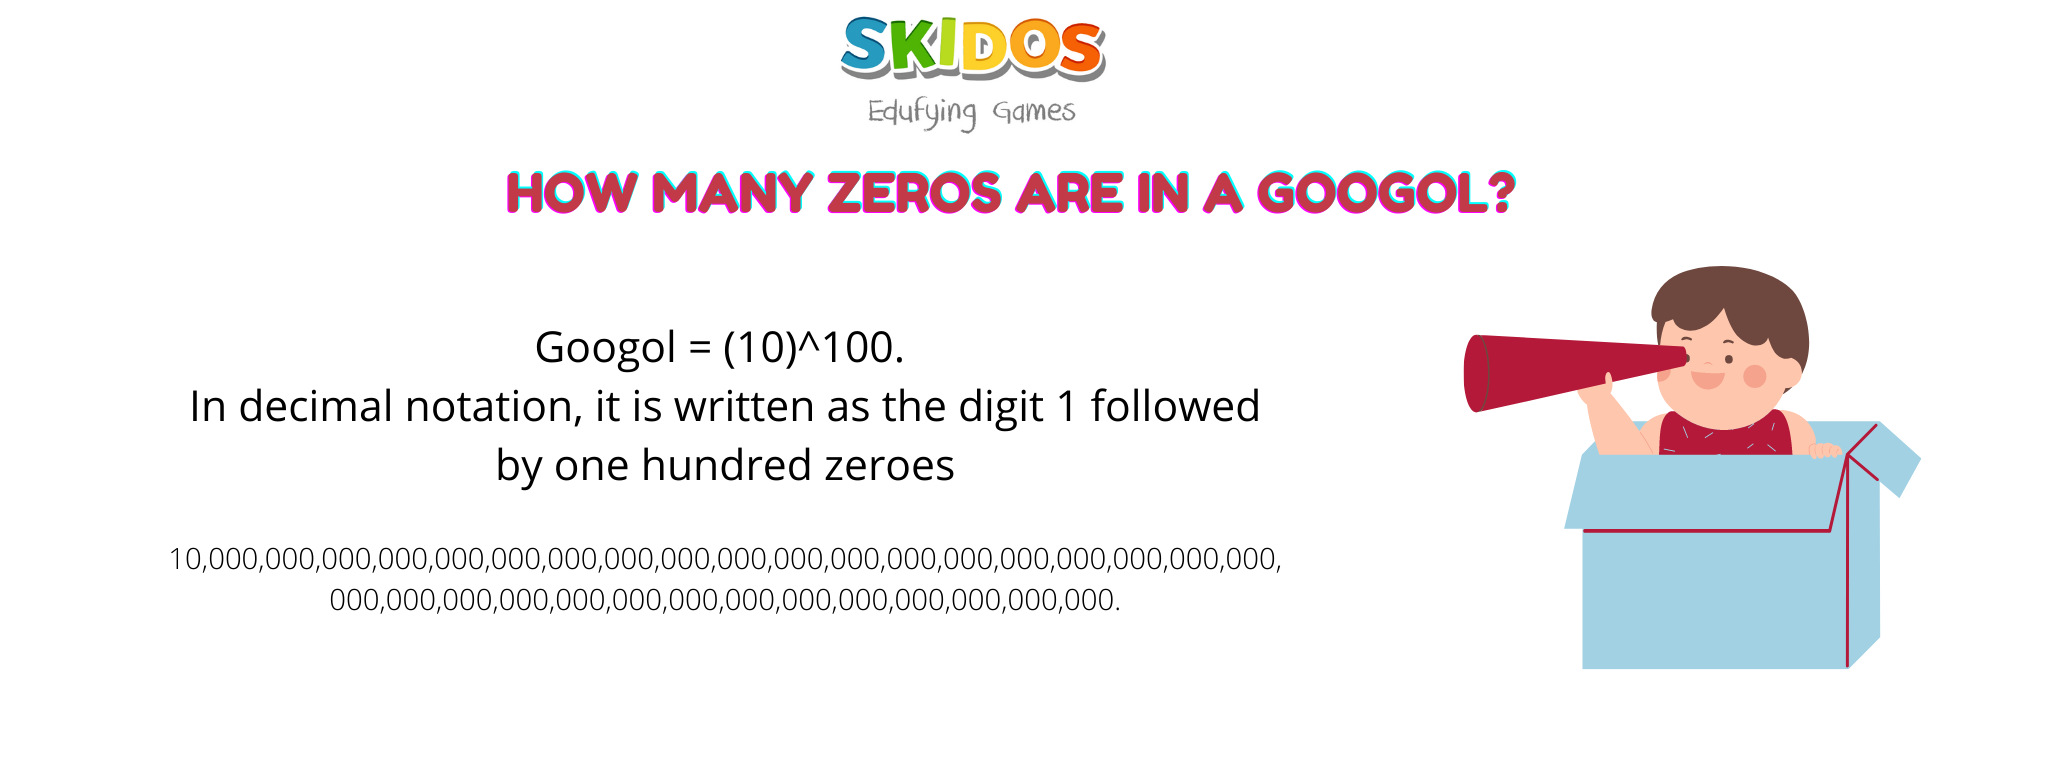 How much is a googol? How many zeros are in a googol